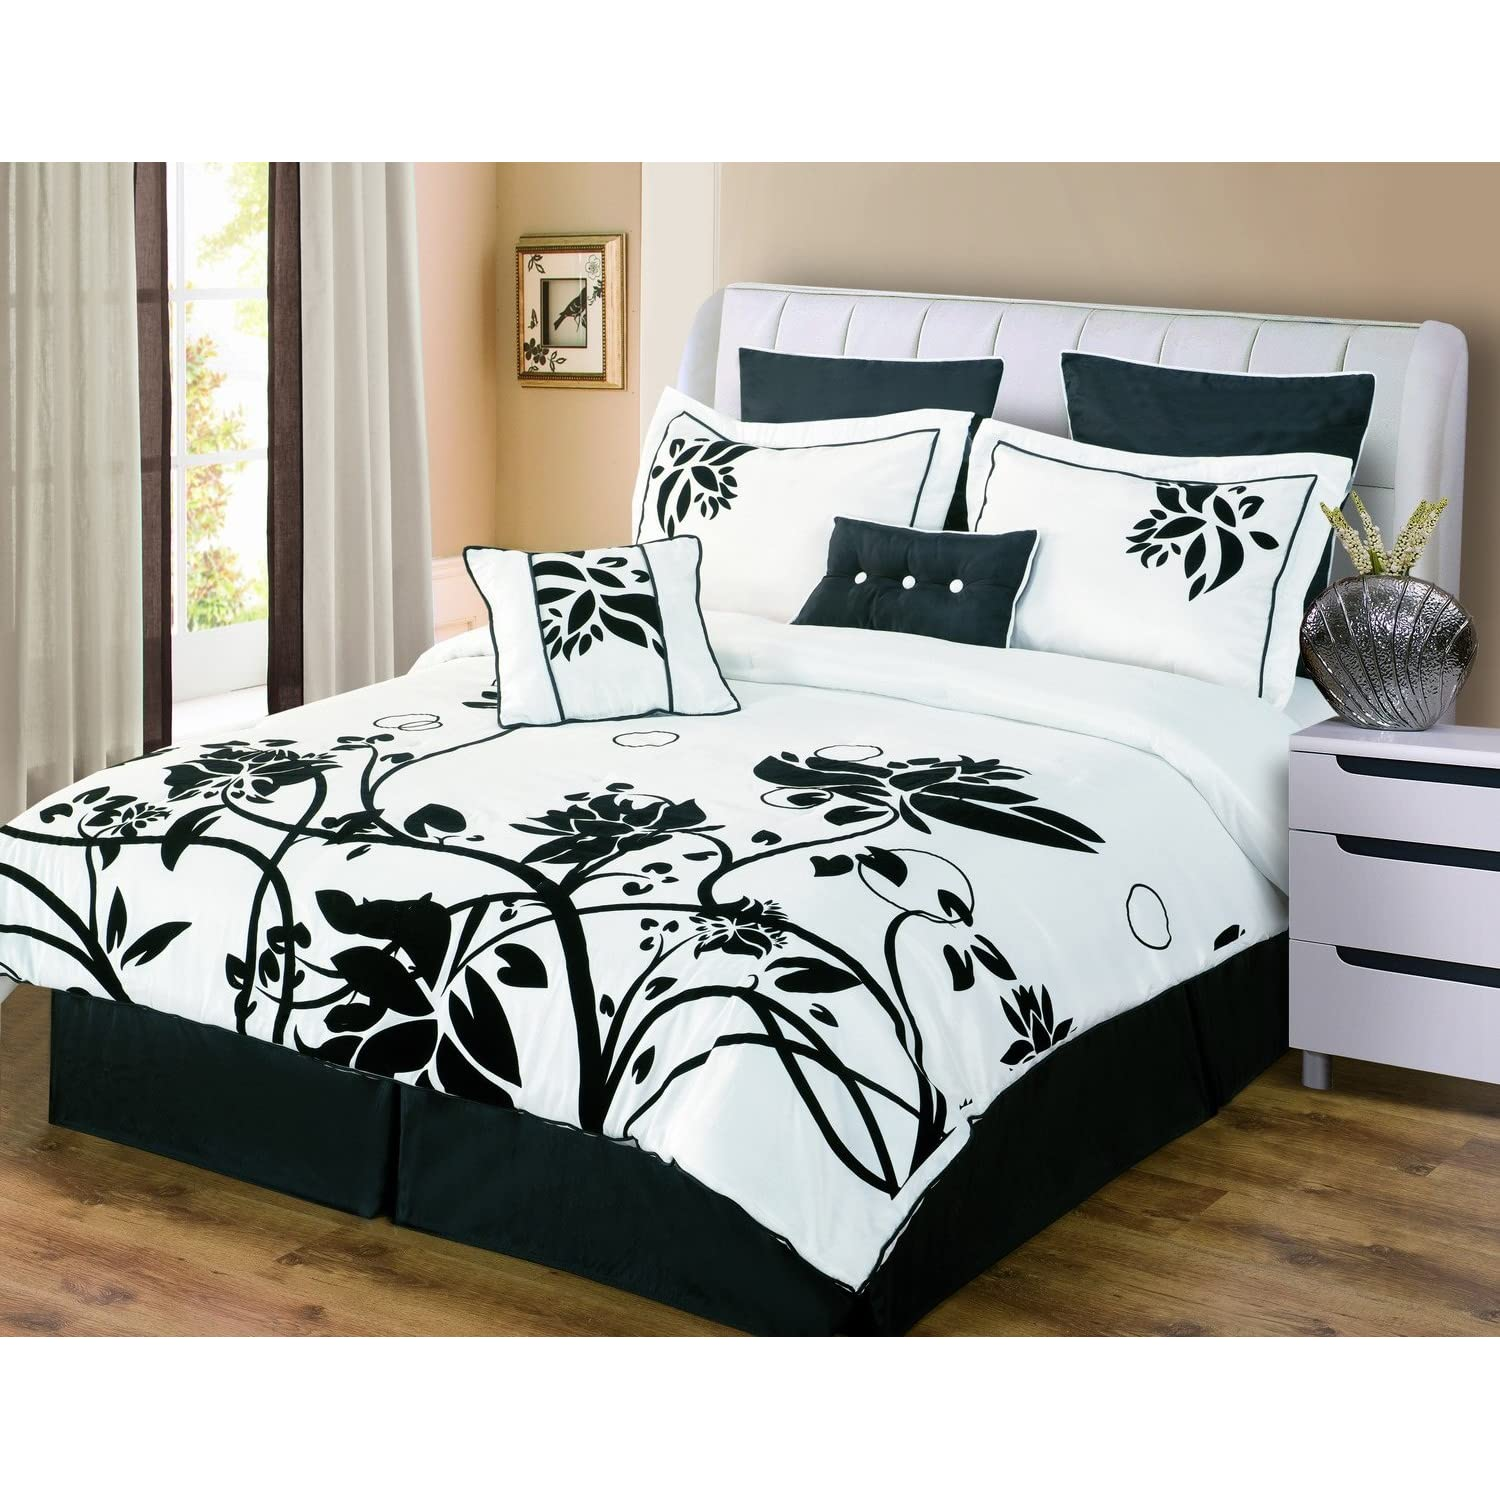 28 black white bedroom decorating ideas black and white black white bedroom decorating ideas black and white bedroom decorating ideas bedroom